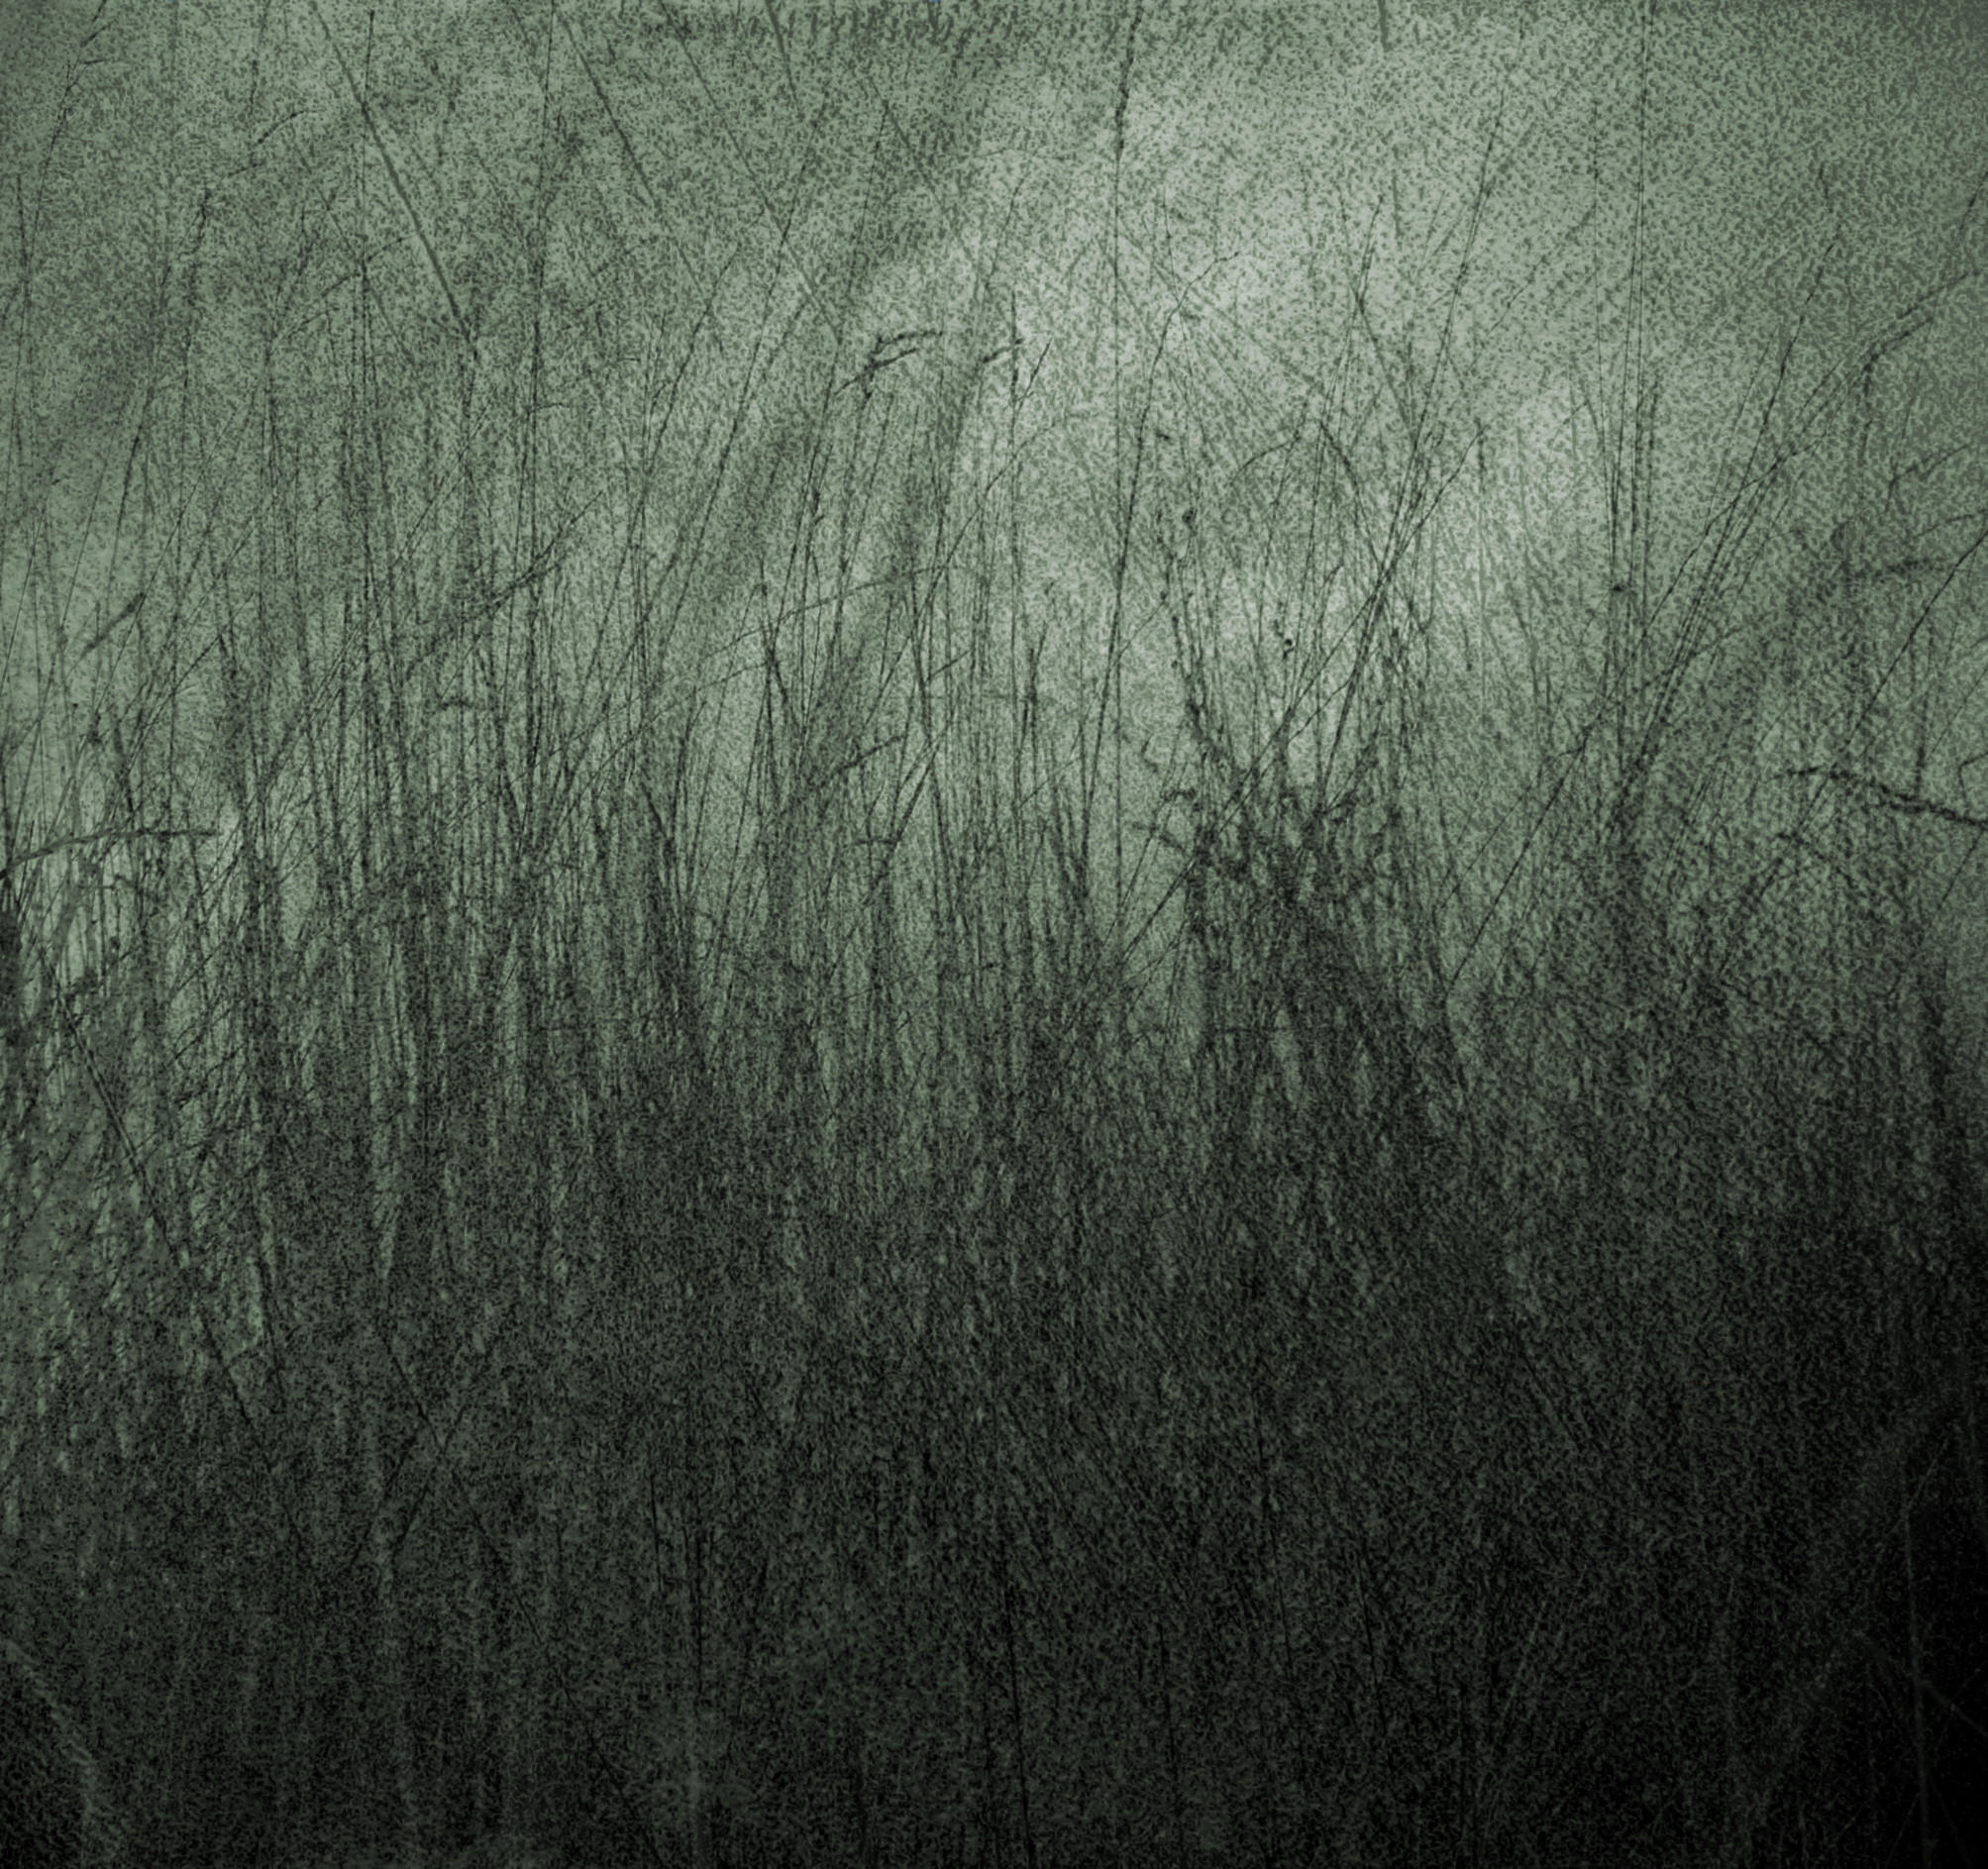 Antique Texture 21 by Inthename-Stock